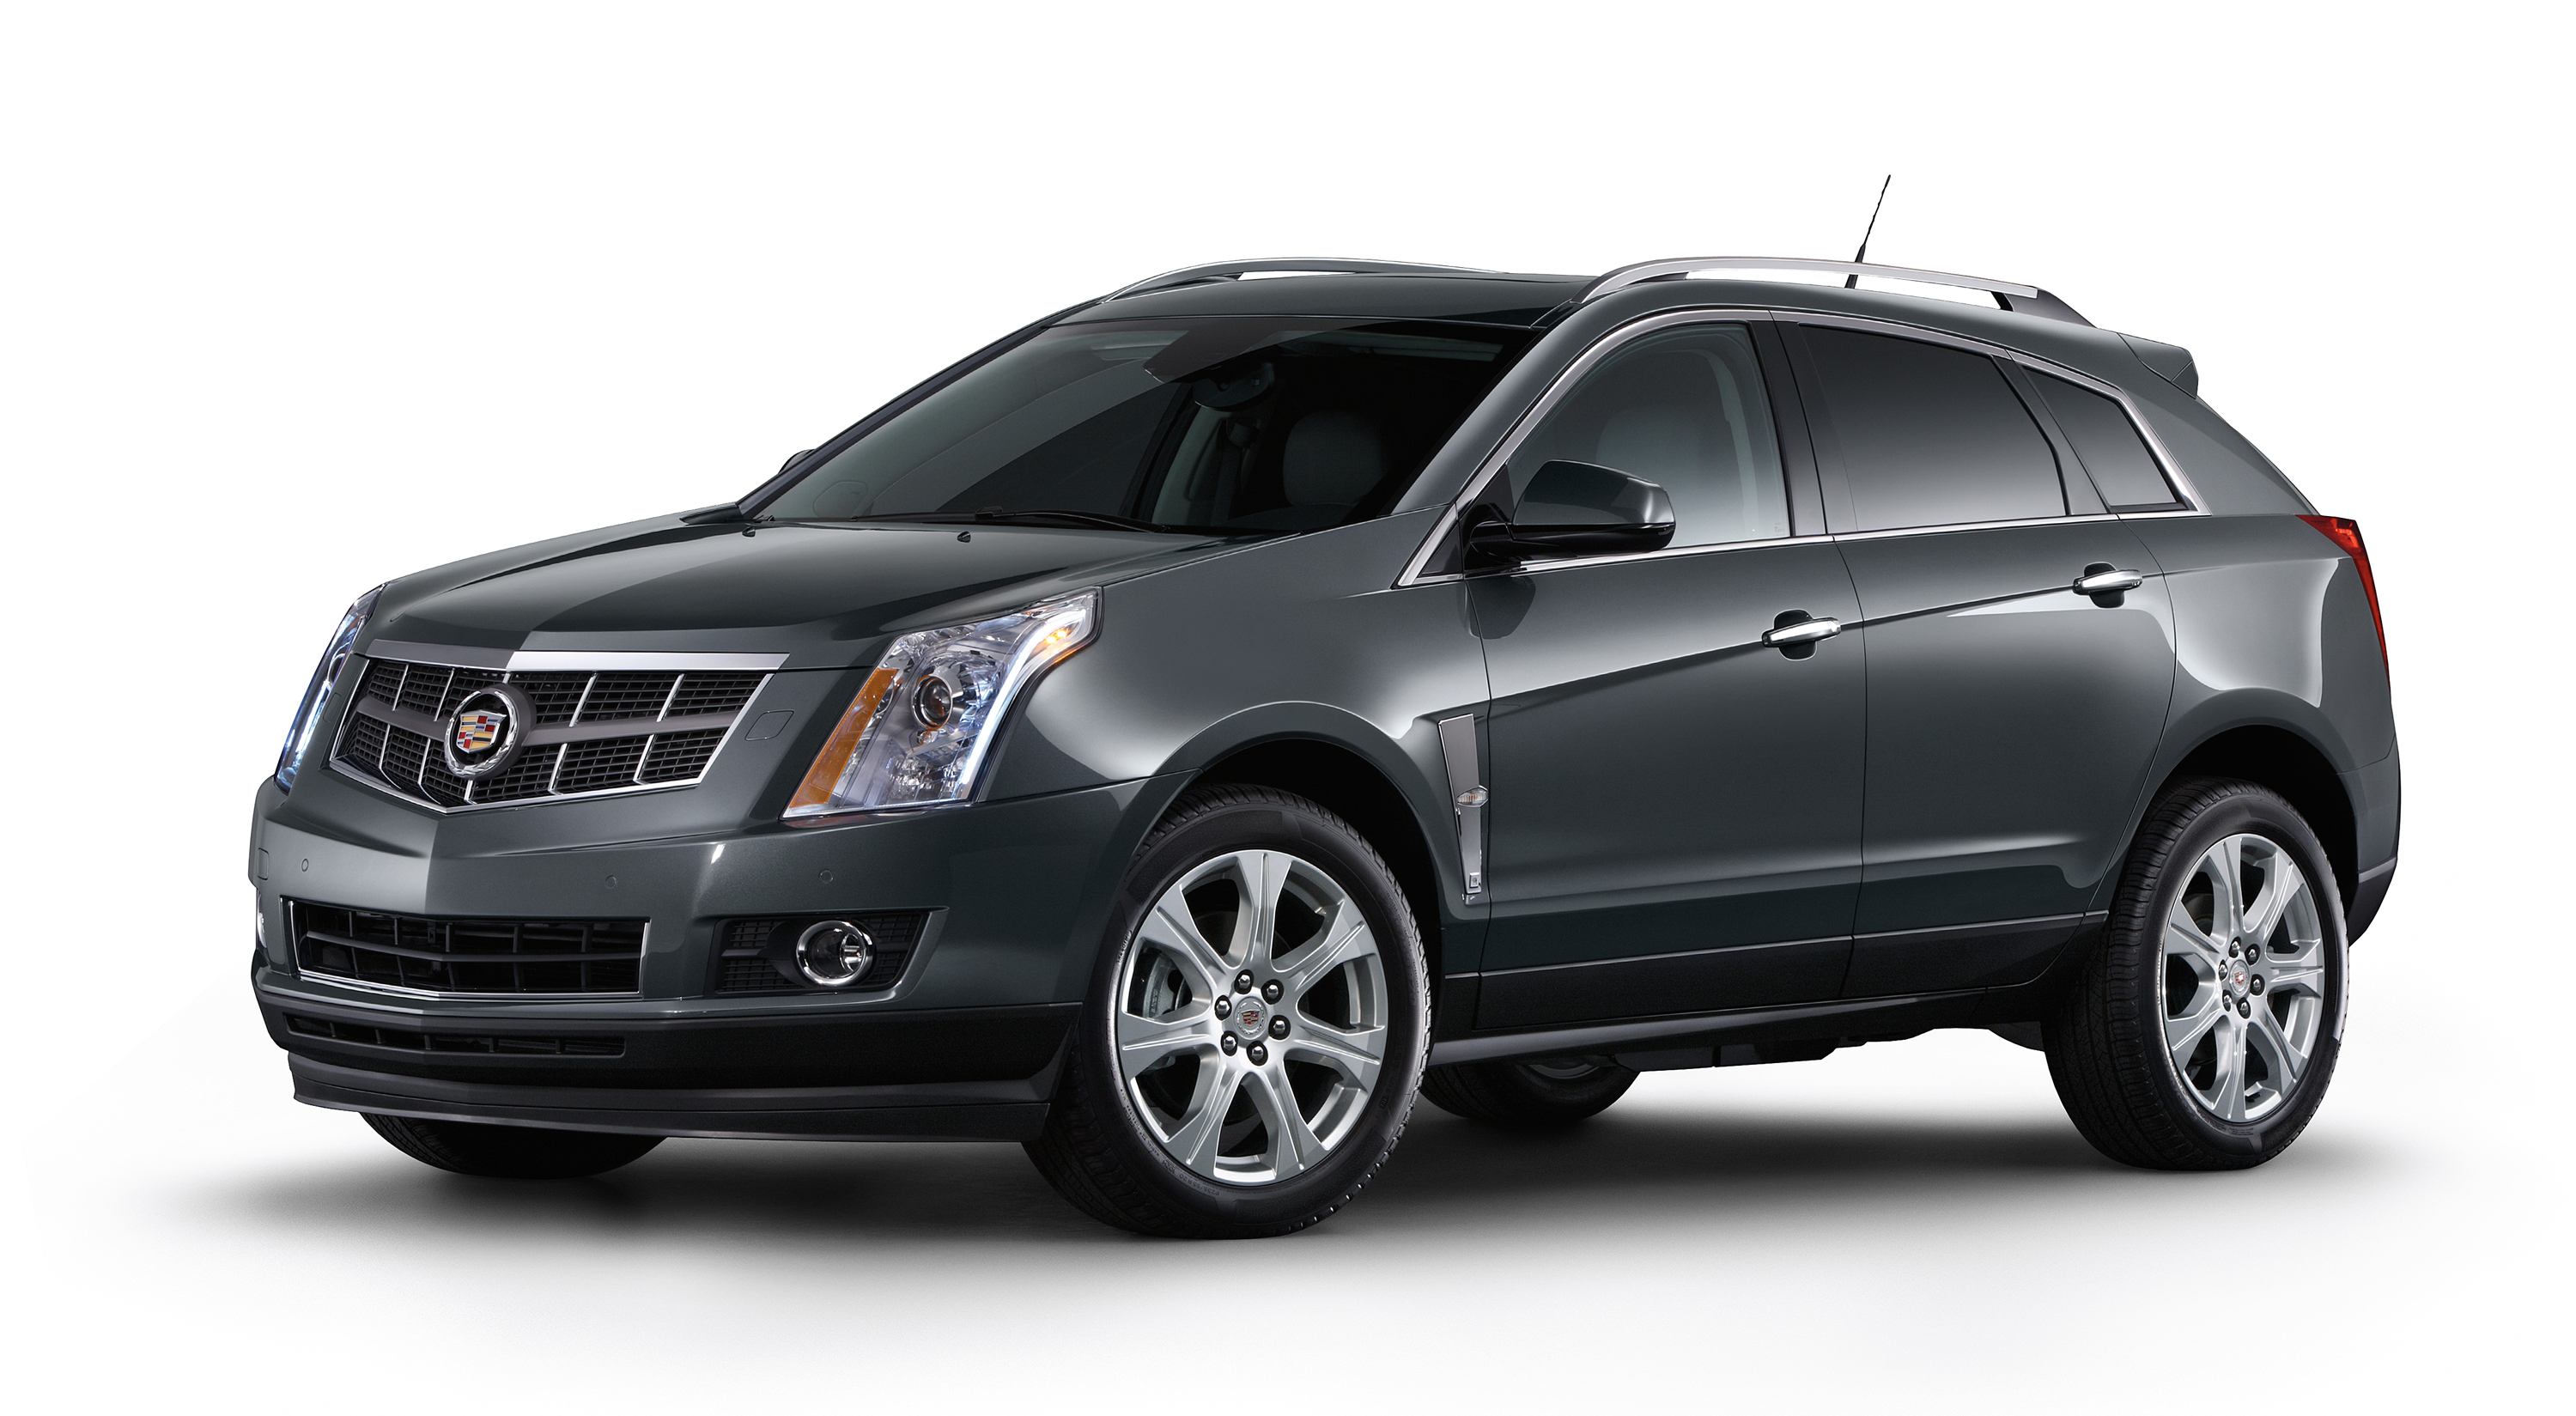 the turbo review srx img cadillac